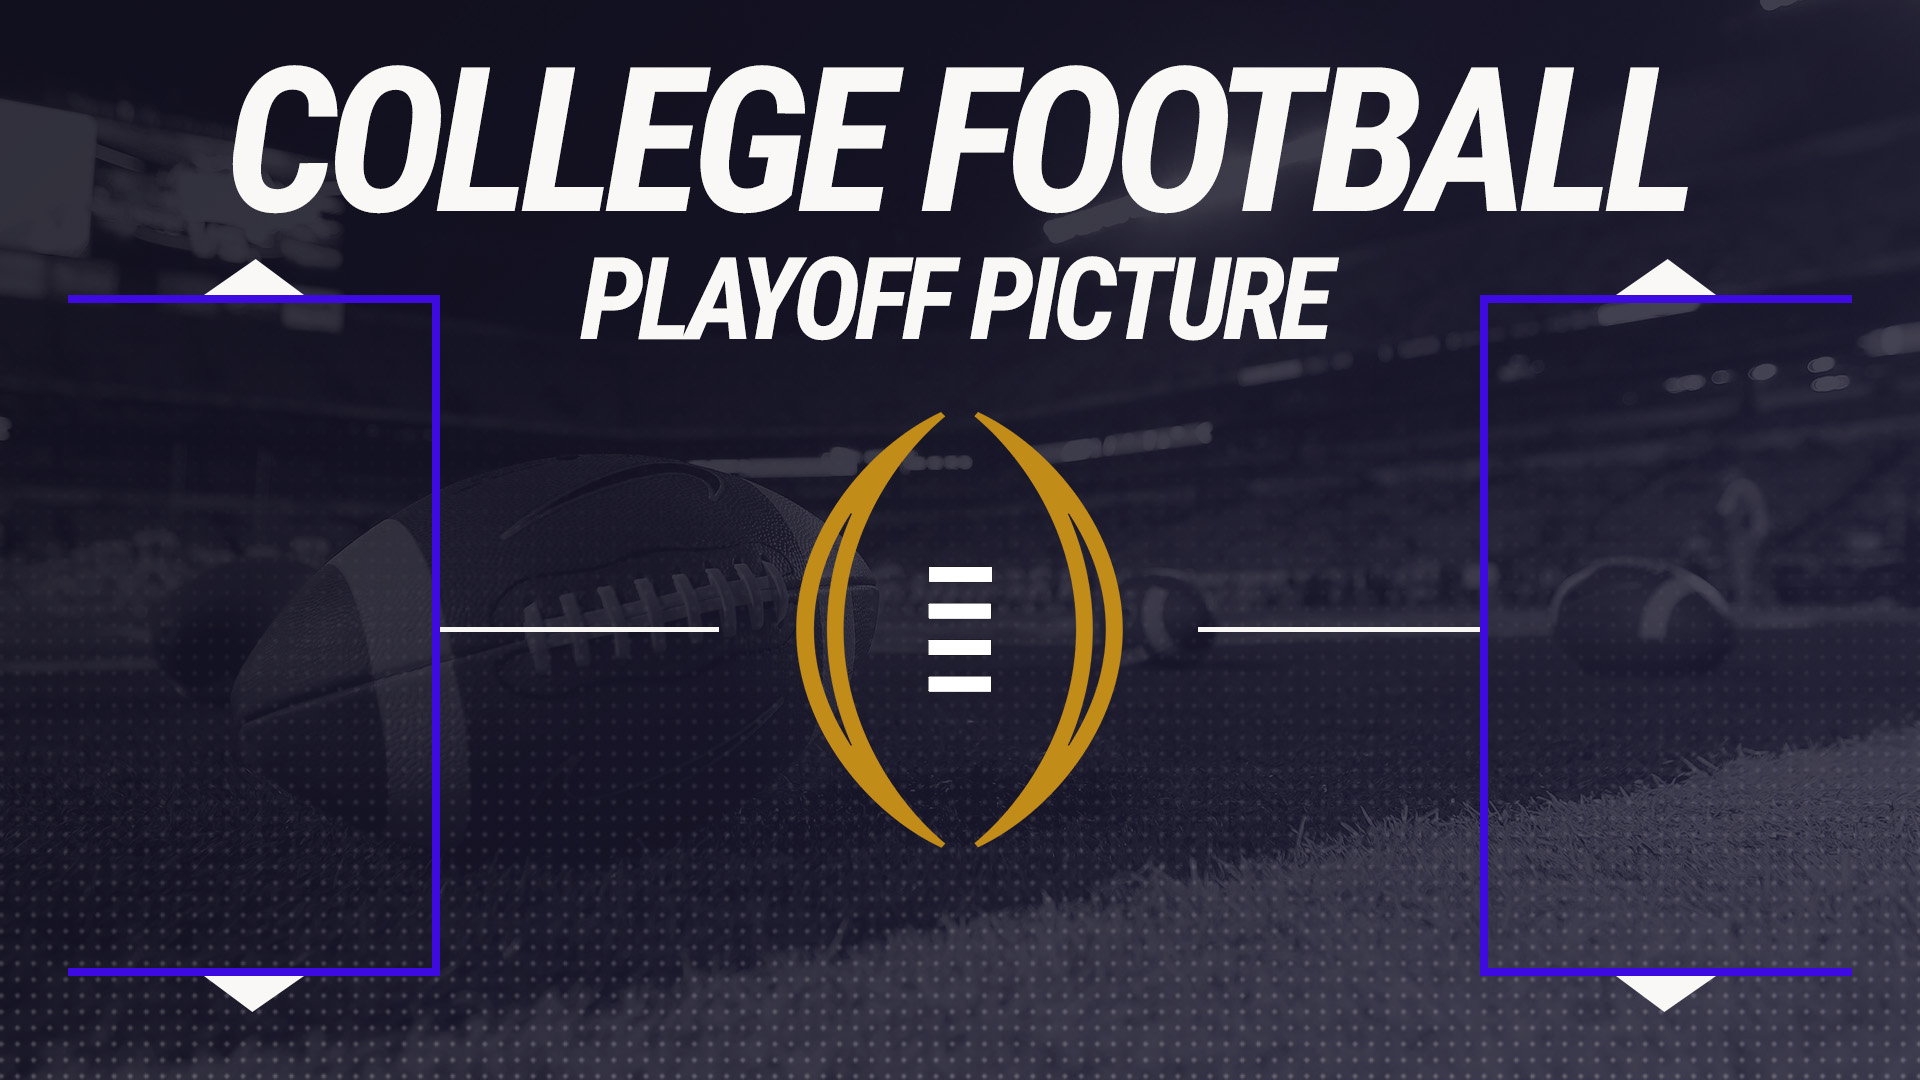 College Football Playoff rankings: Who are the four teams in the final CFP poll release of 2019?